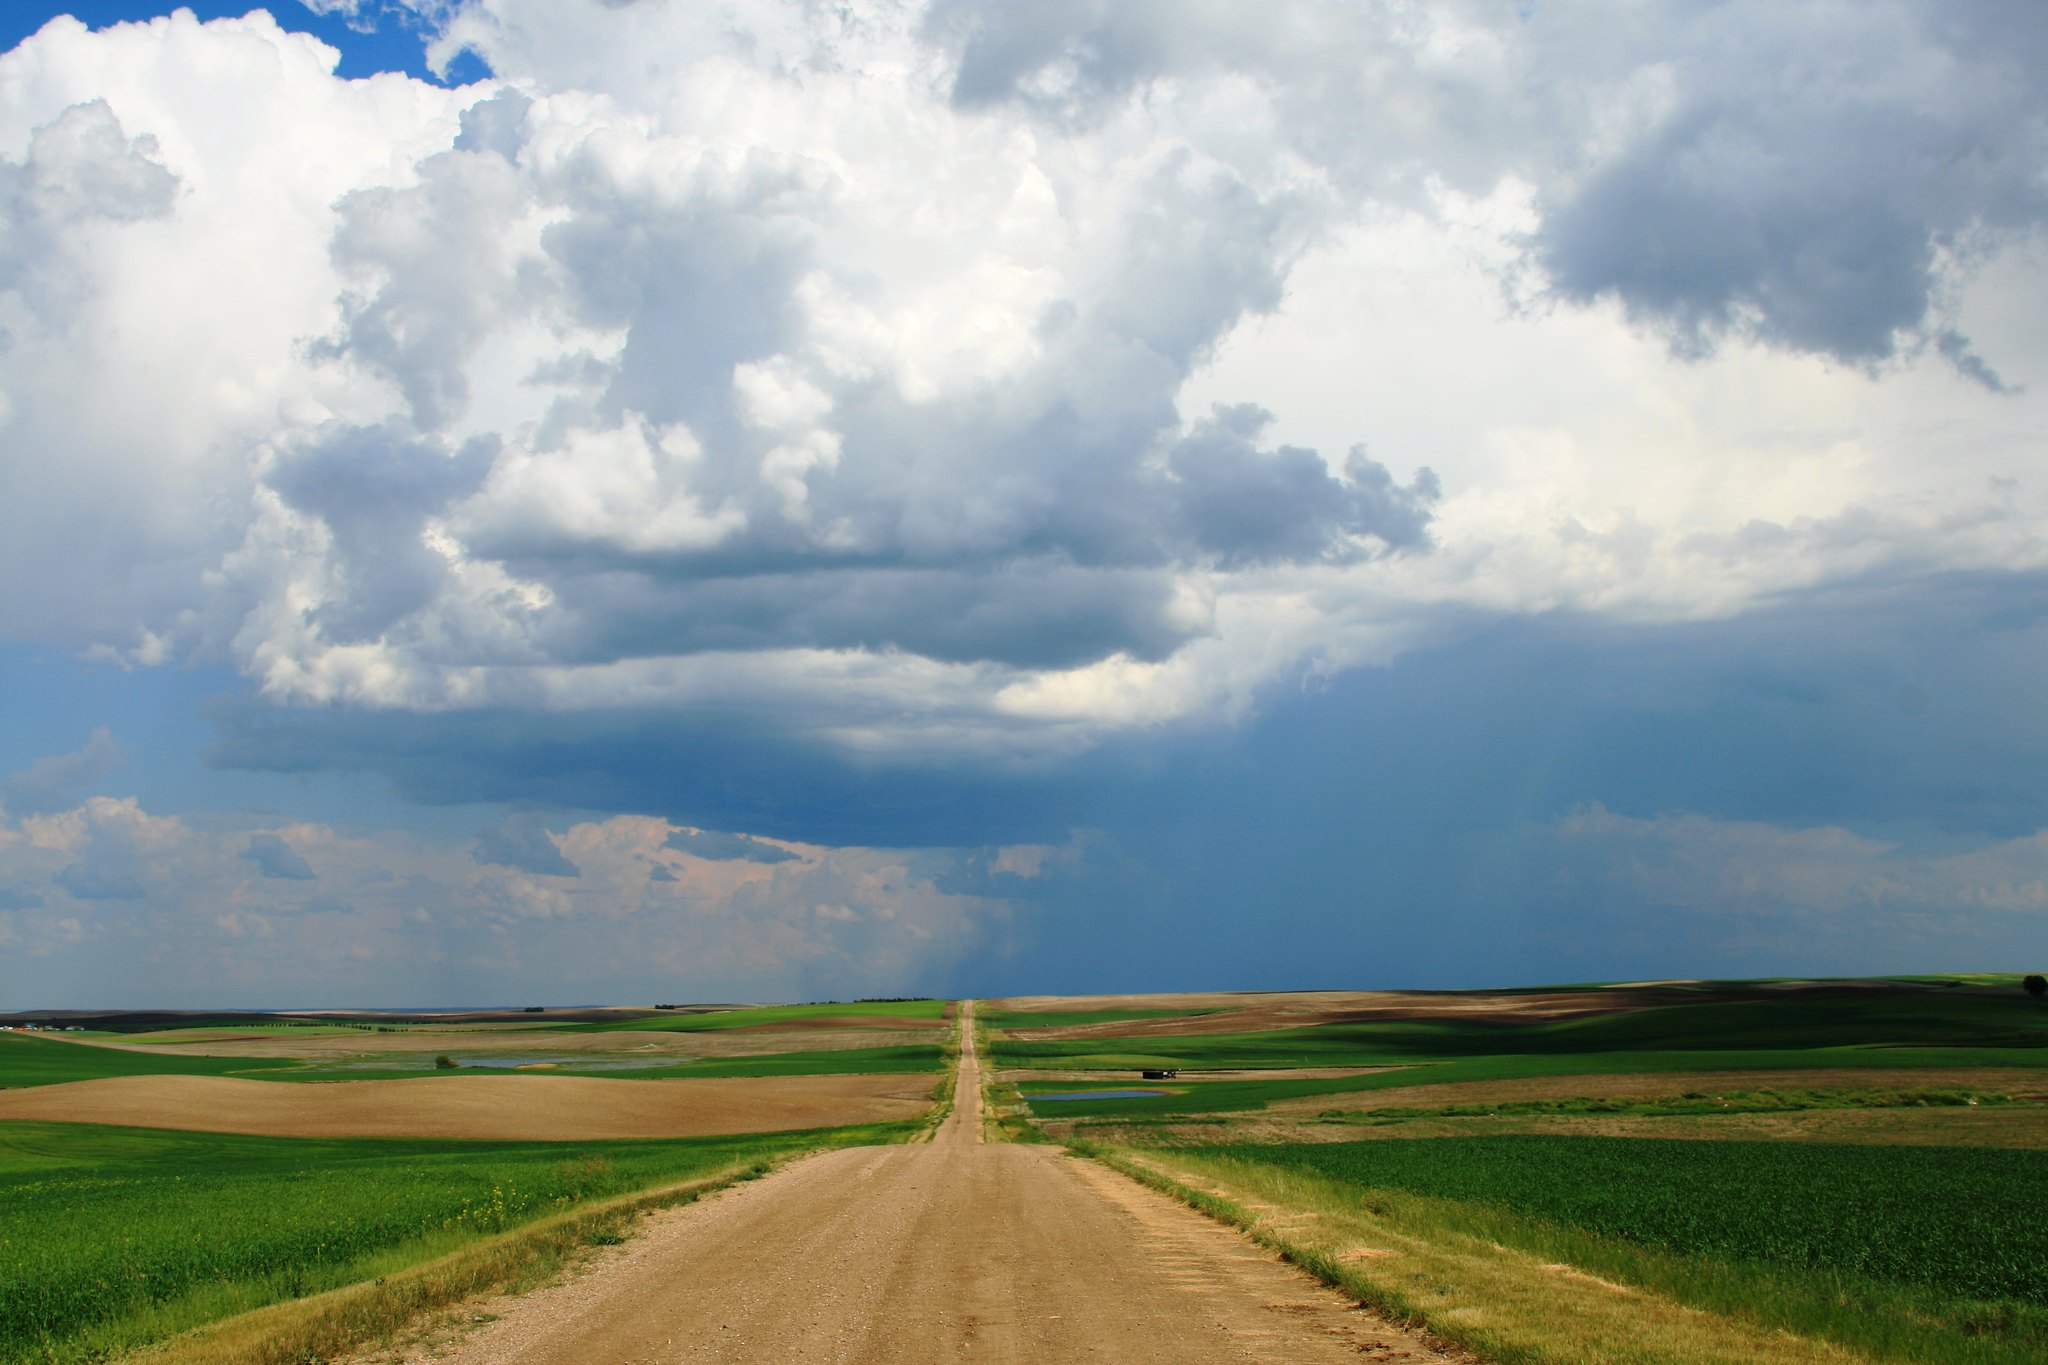 Road through Saskatchewan wheat fields